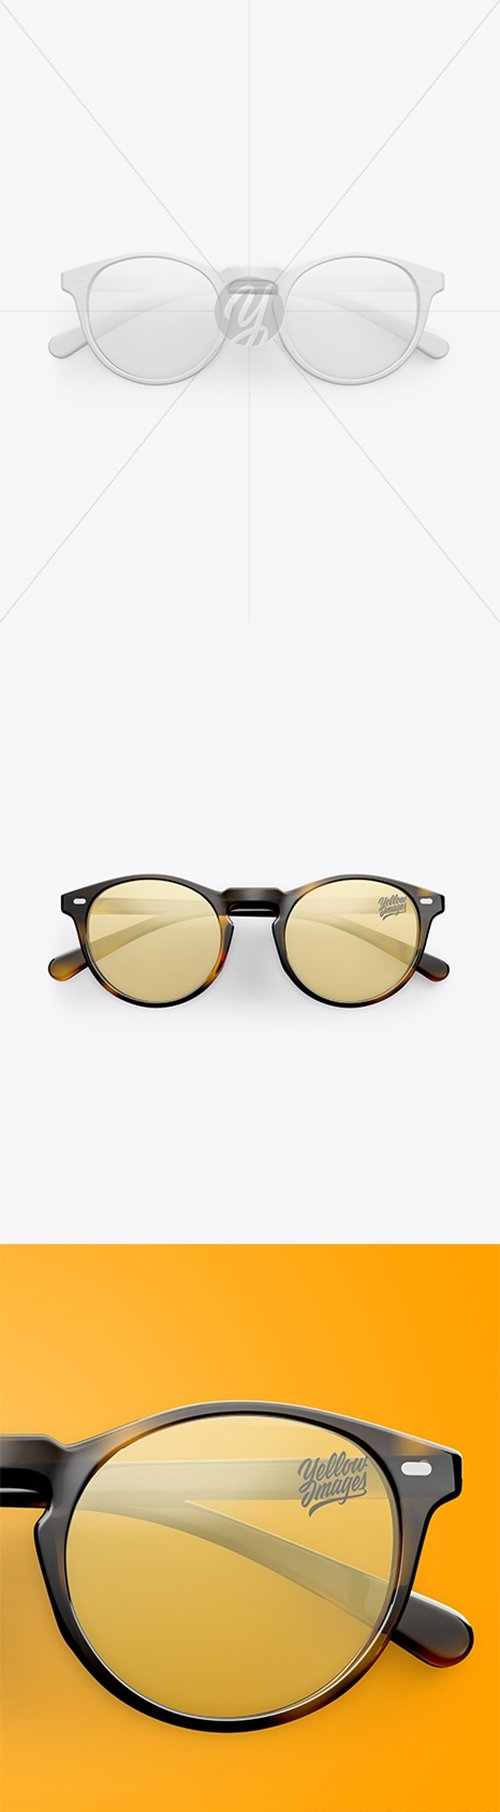 Sunglasses Mockup - Top View 27693